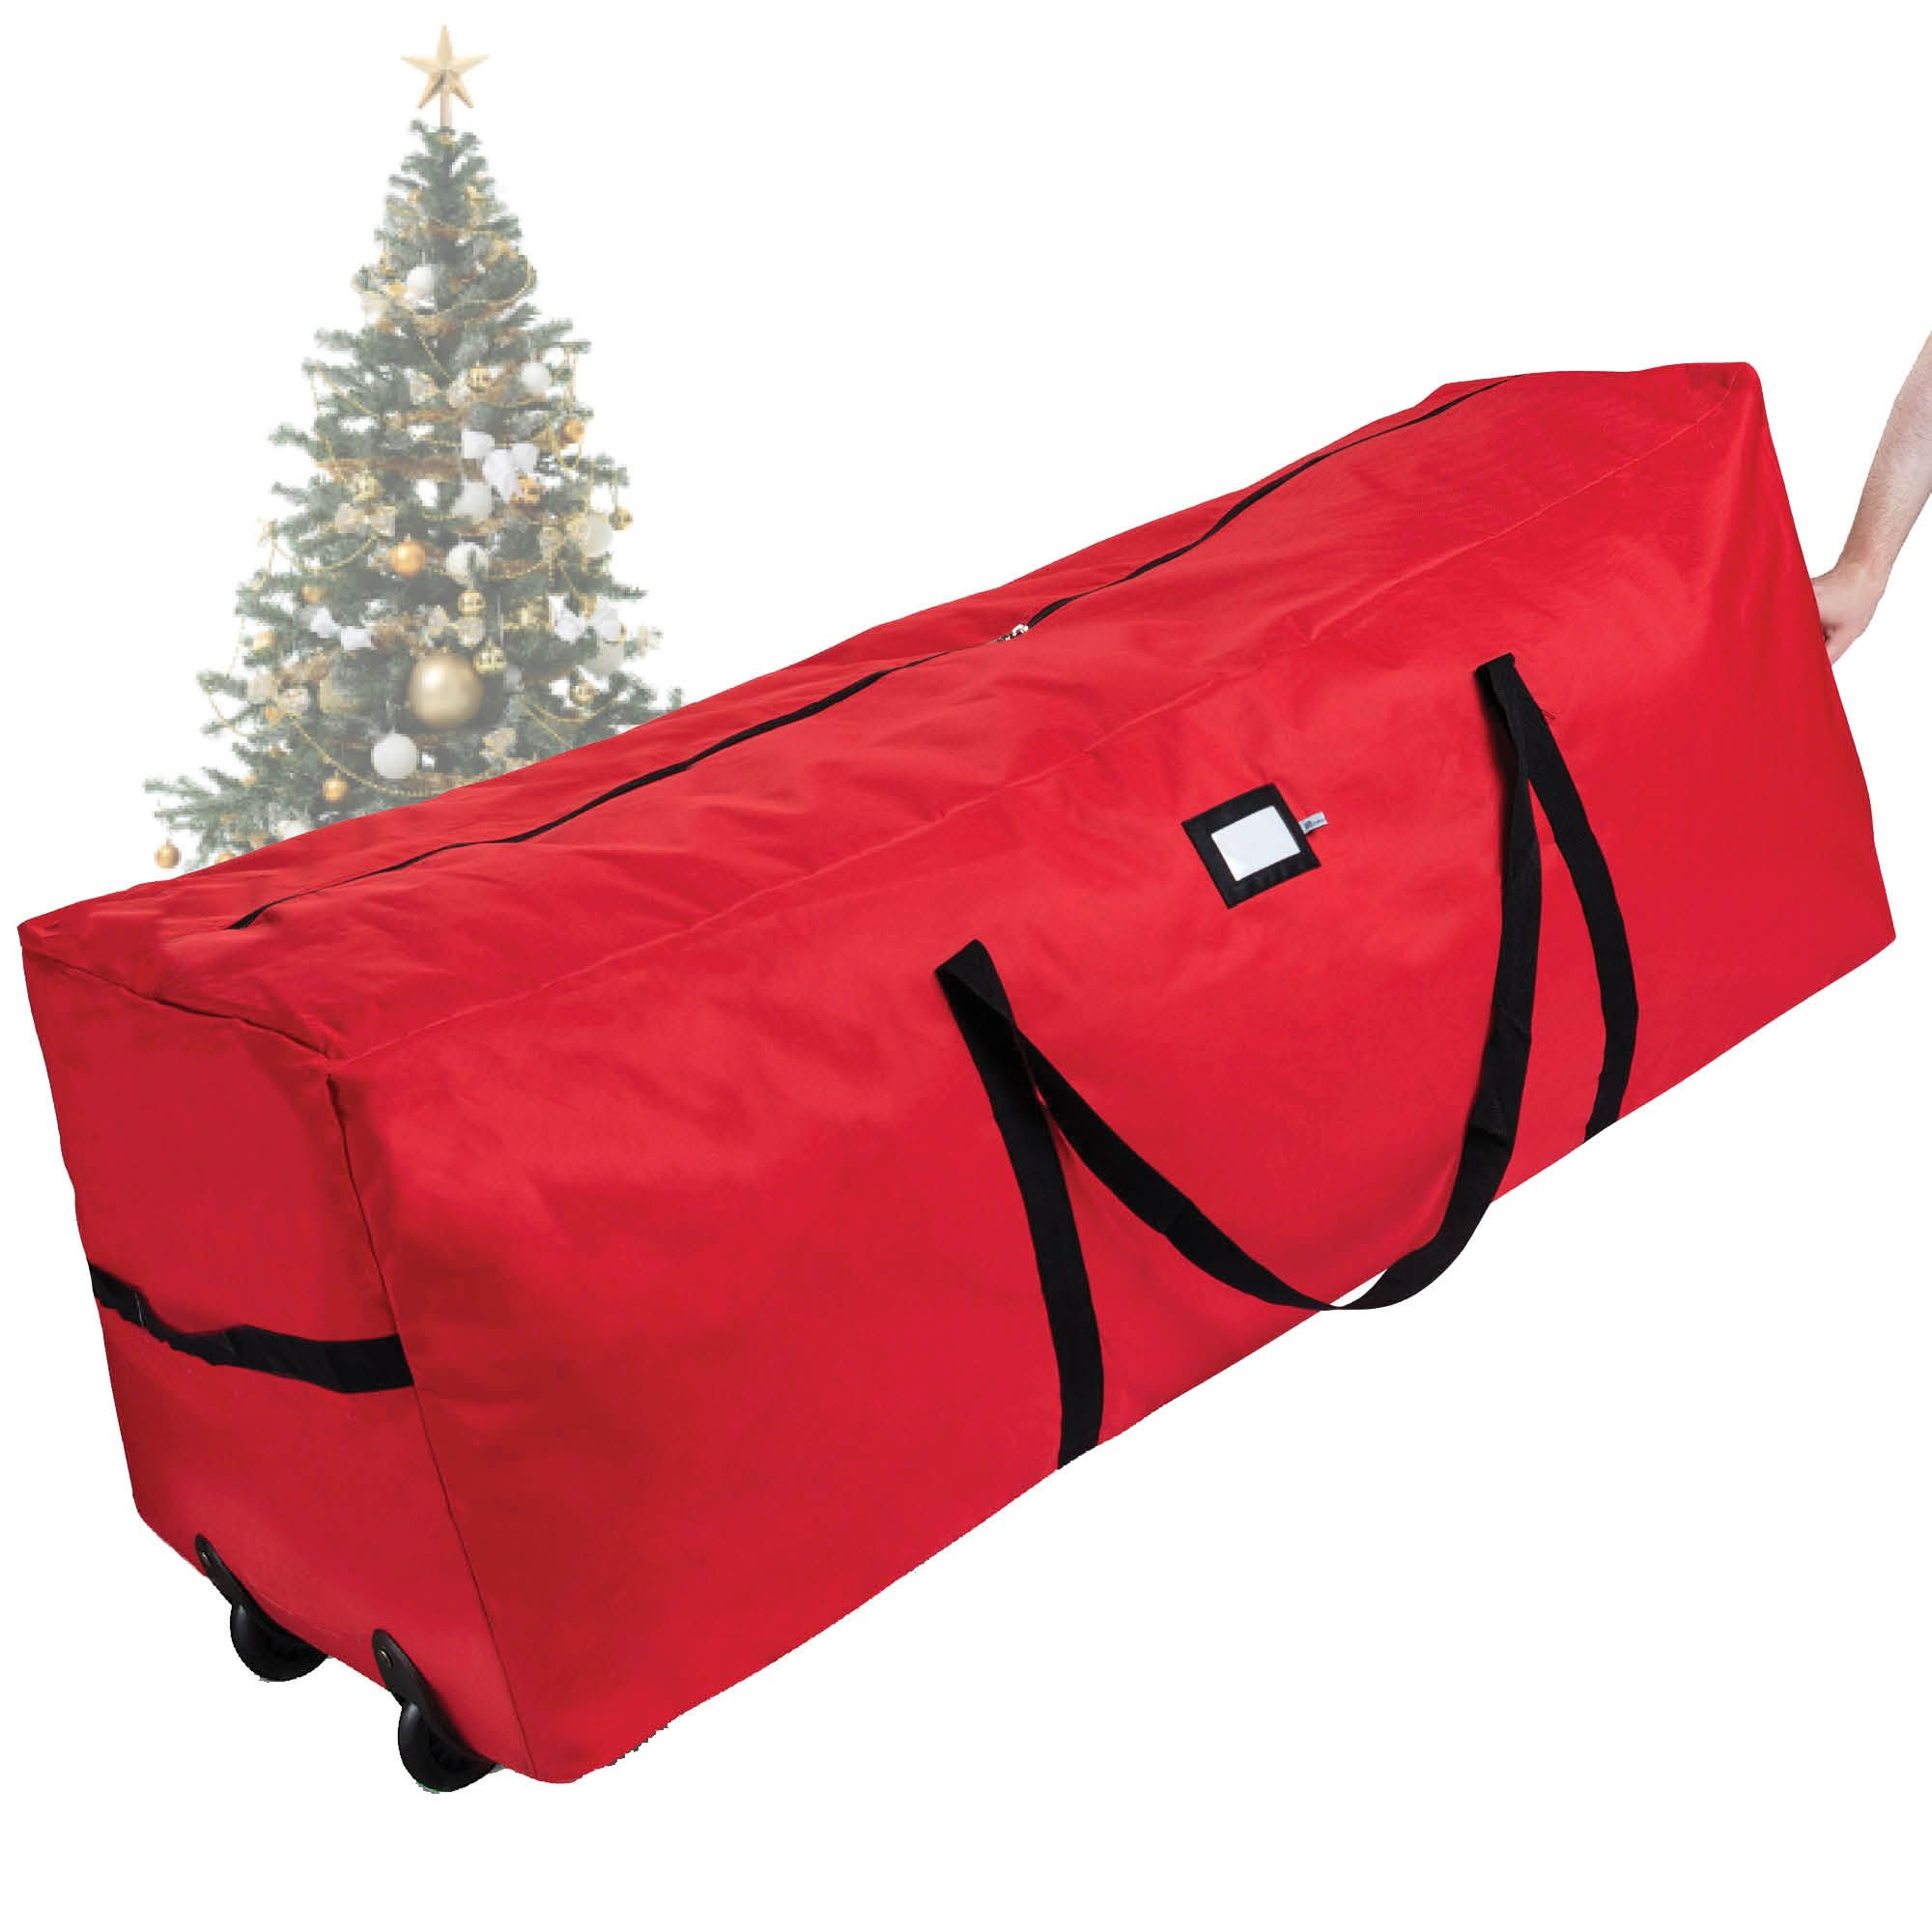 Free 2 Day Shipping On Qualified Orders Over 35 Buy Premium Large Rolling Christmas Tree S Christmas Tree Storage Tree Storage Bag Christmas Tree Storage Bag Rolling christmas tree storage bag